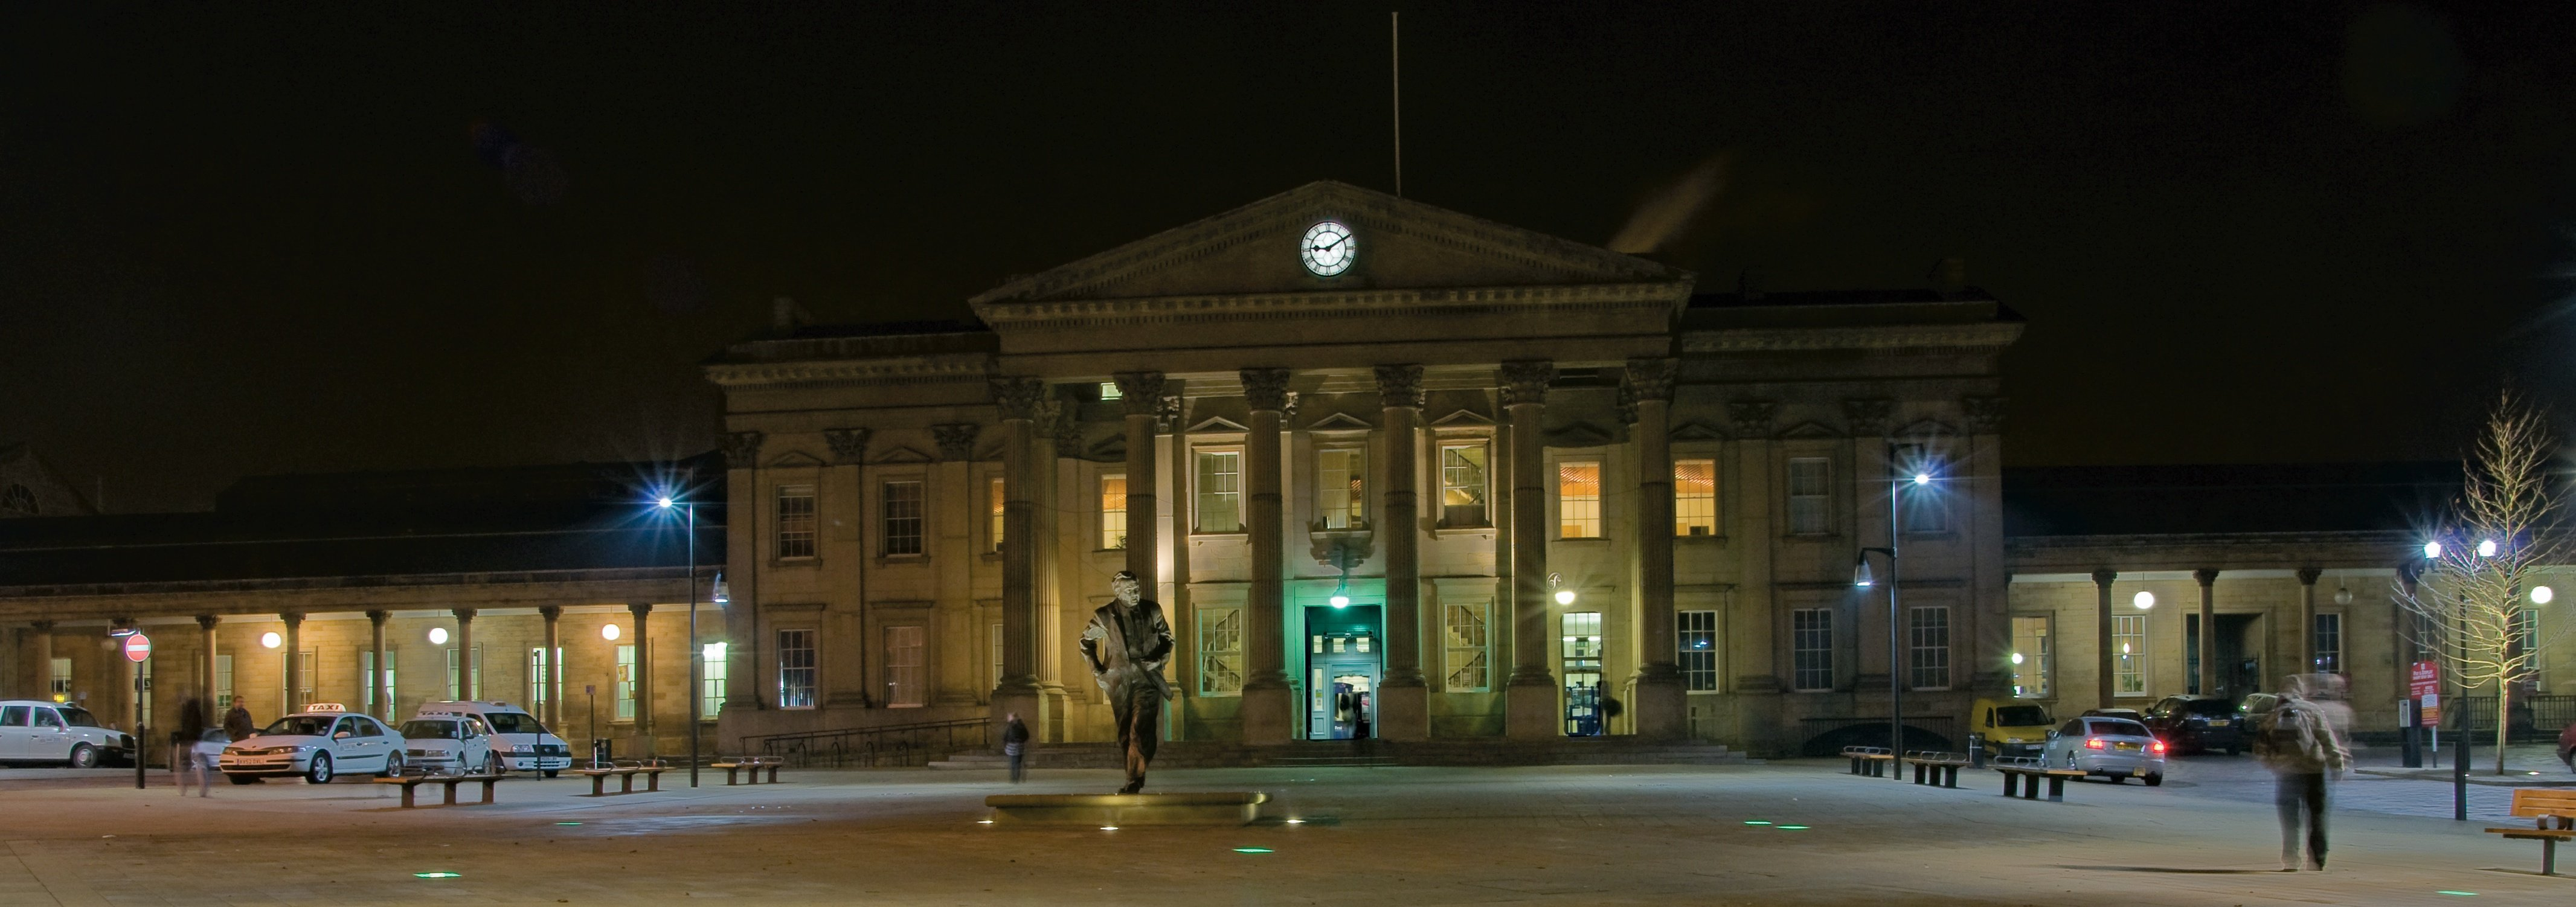 Exterior of Huddersfield train station at nighttime